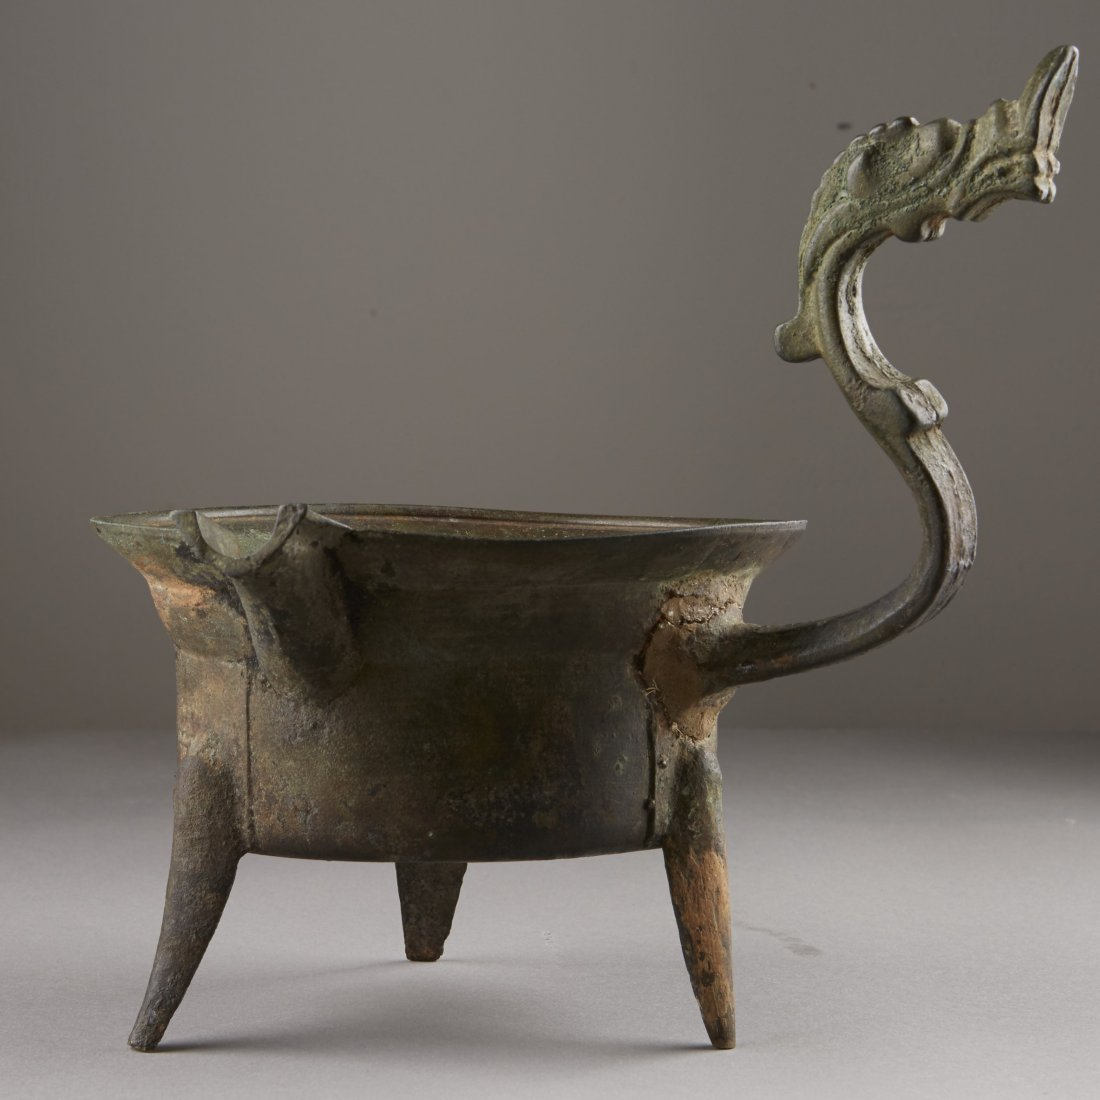 Chinese Bronze Han Dynasty Tripod Cooking Vessel